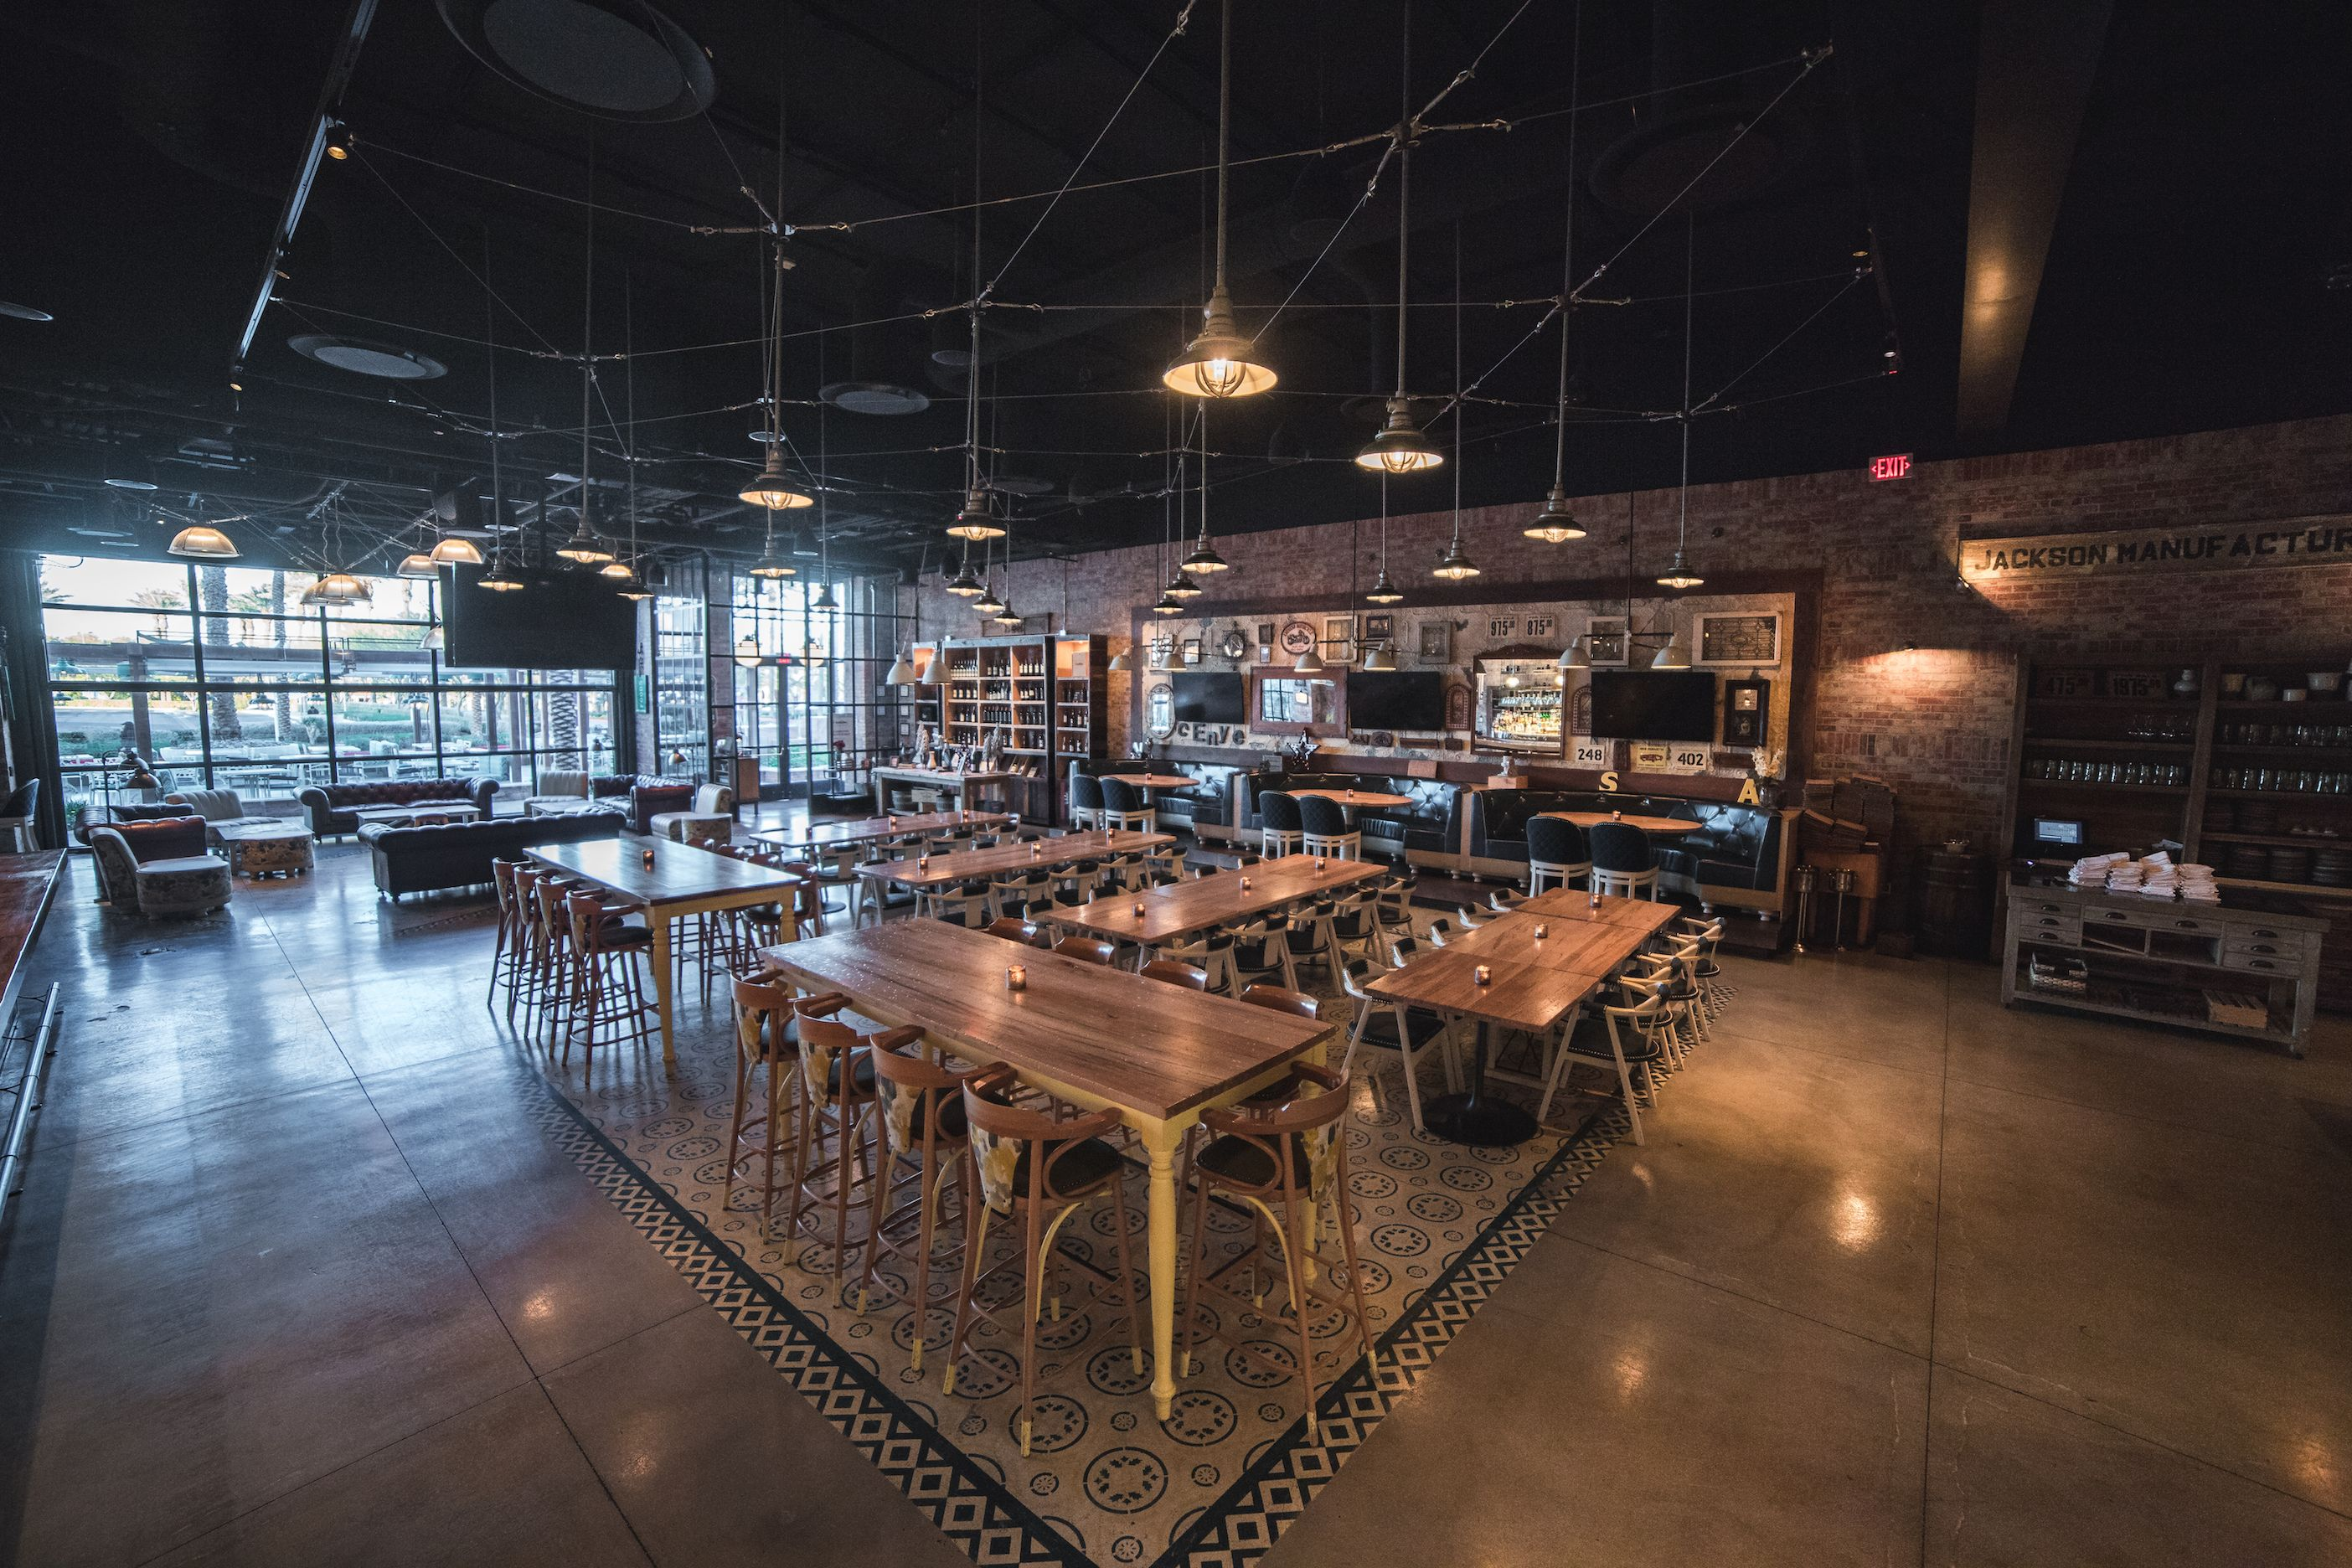 Hearthstone Kitchen Cellar Rustic American Dining Utilizing Simple Seasonal And Sustainable Ingredients Located At Hearthstone House Made Red Rock Casino